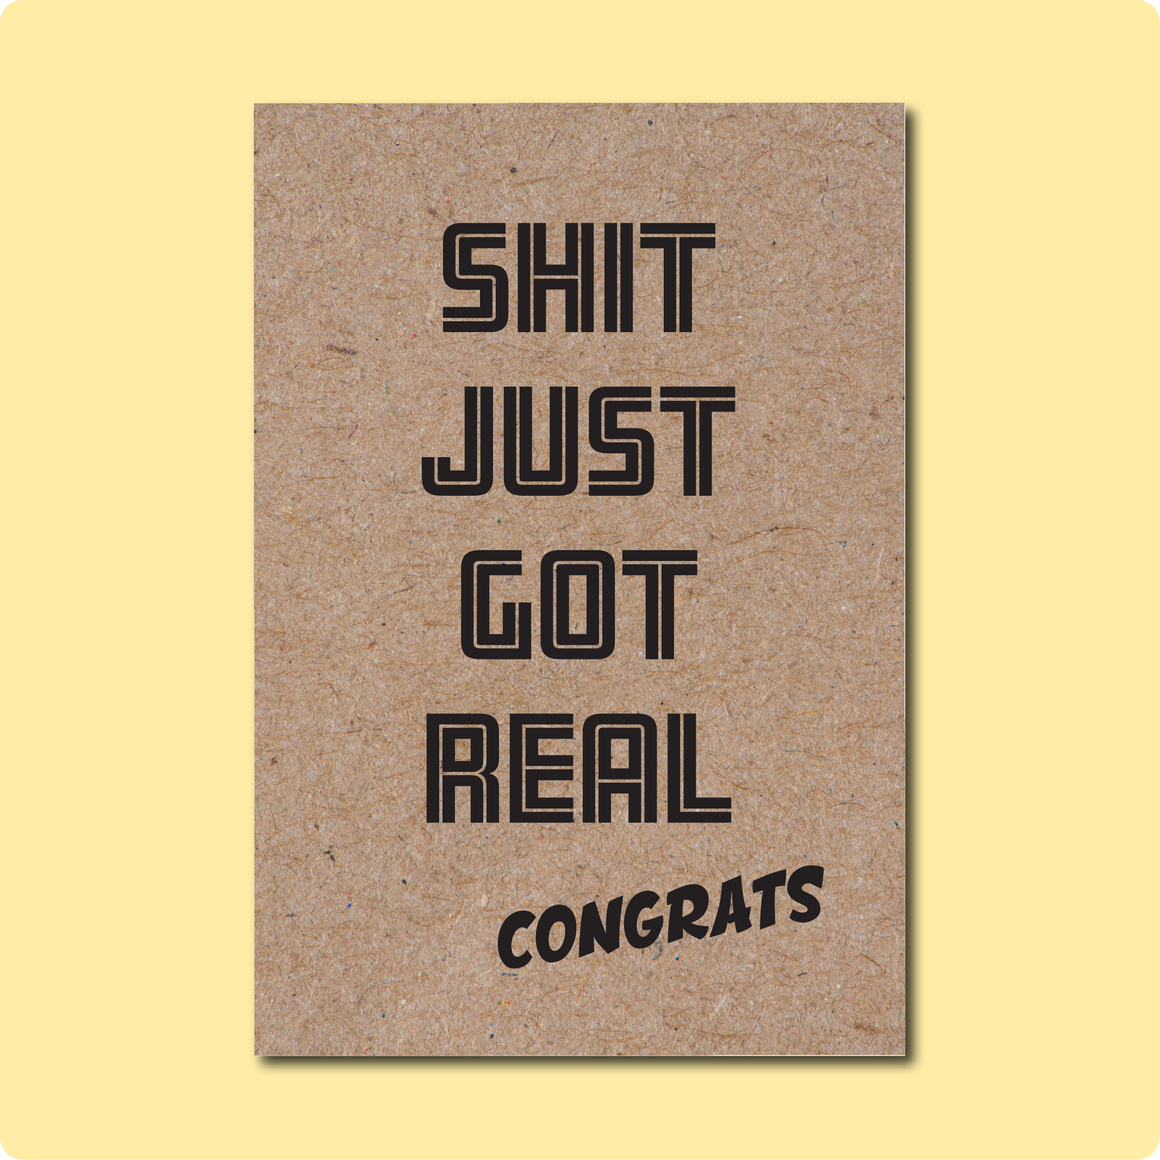 Shit Just Got Real Congratulations Greeting Card for Wedding Engagement Gay LGBT